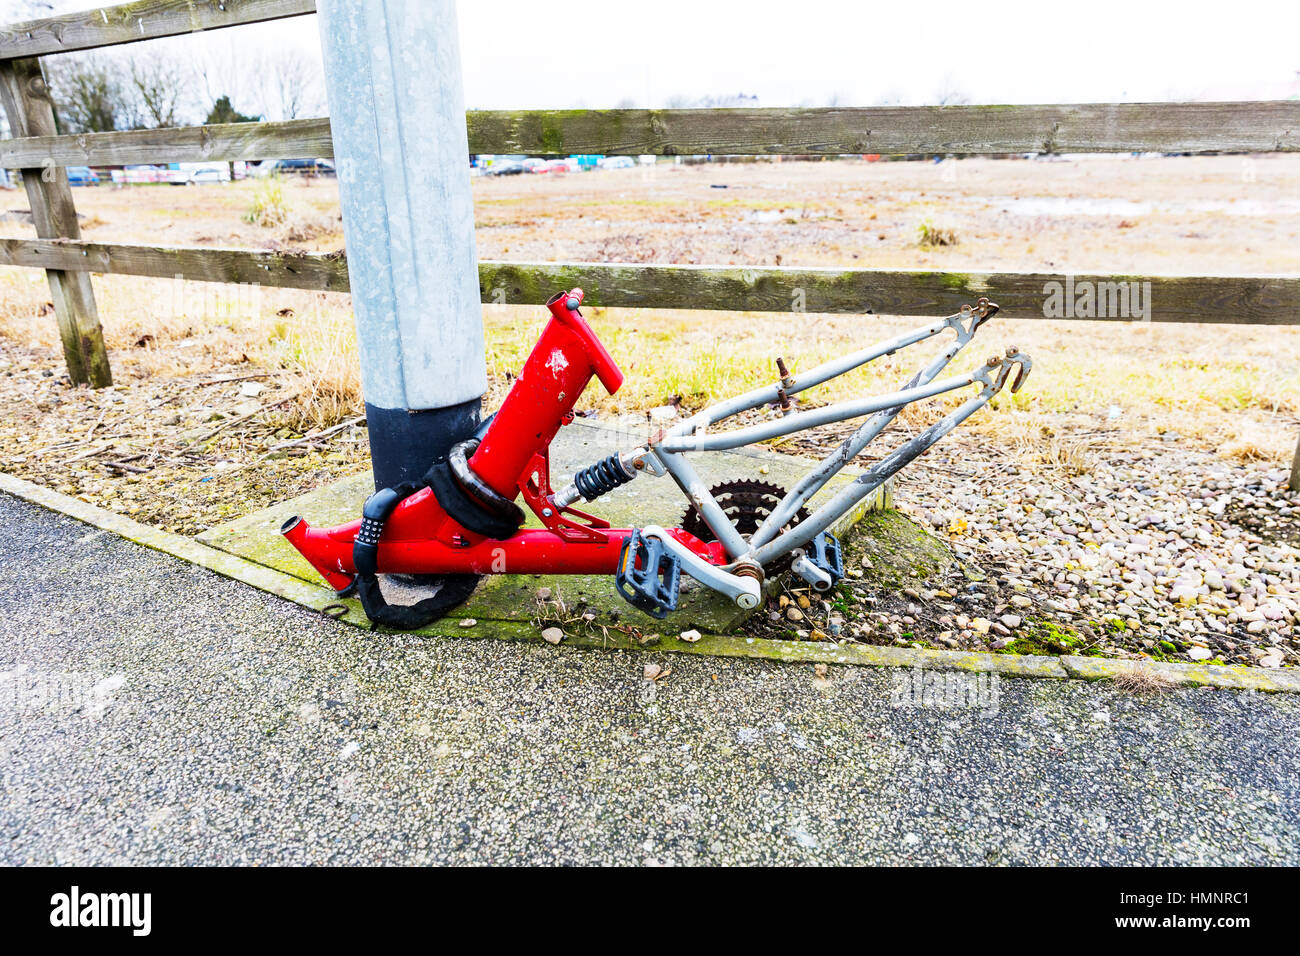 Secure bike pushbike secured to lamp post stripped bare of valuable parts wheels seat handlebars etc - Stock Image